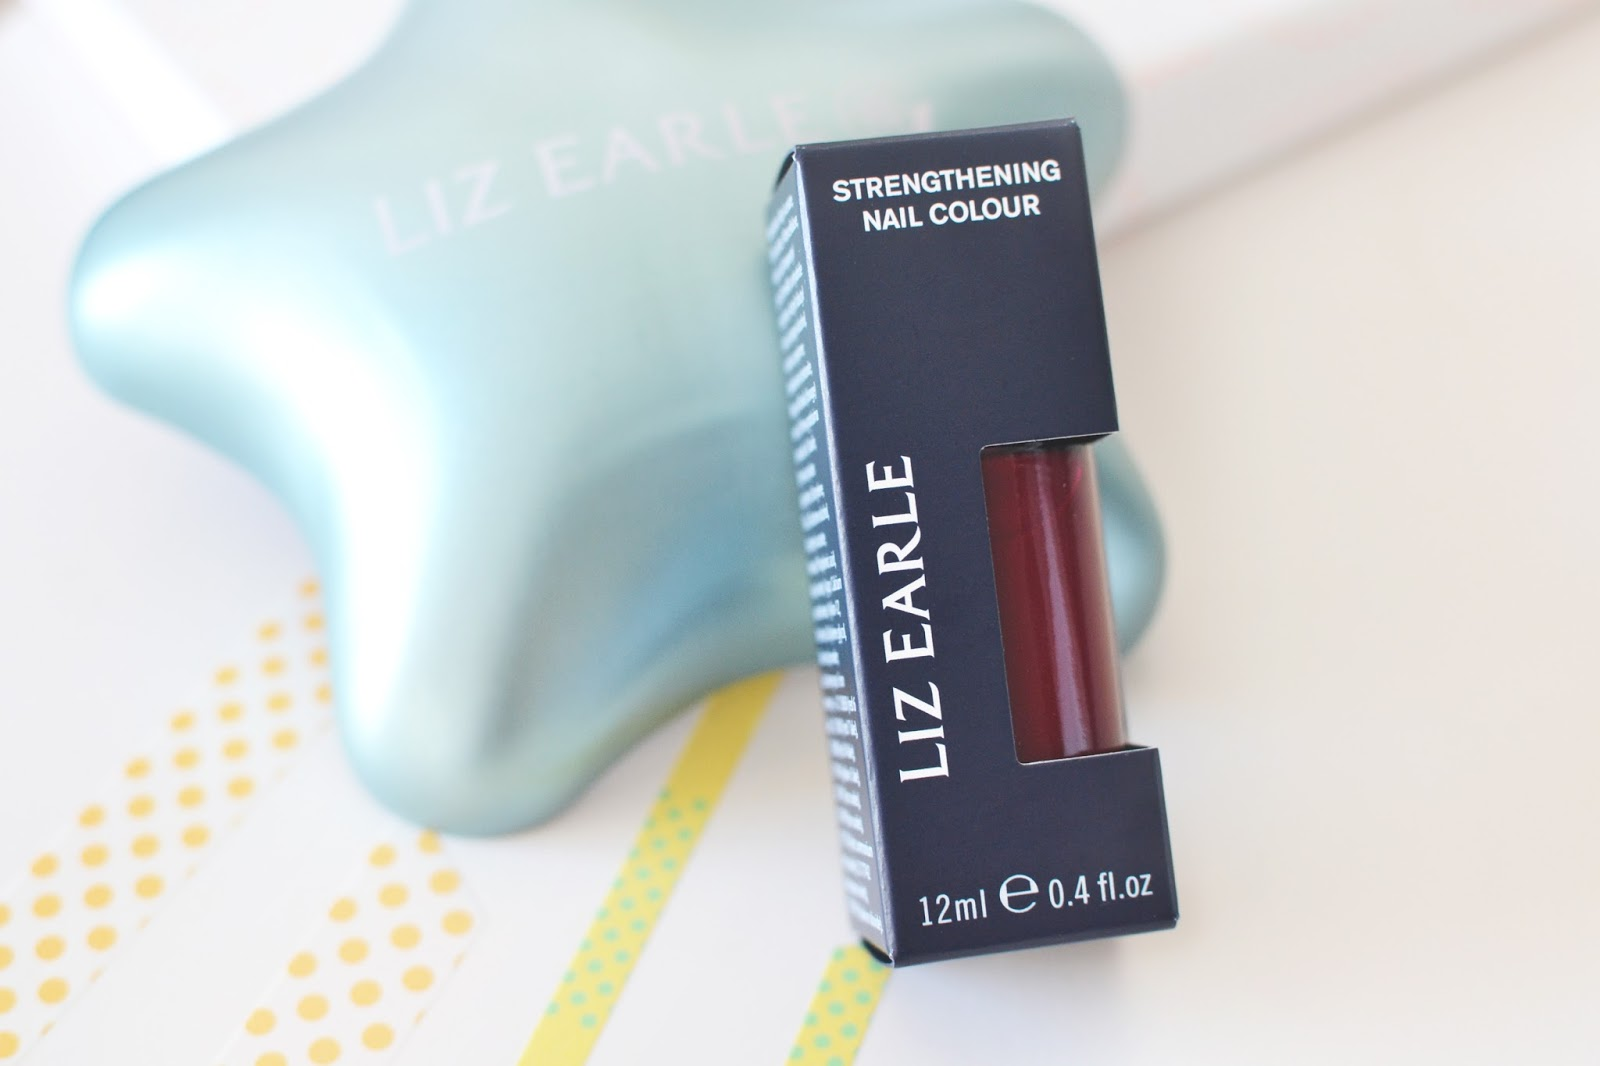 liz earle pure poetry nail polish, red nail polish, liz earle nail colour